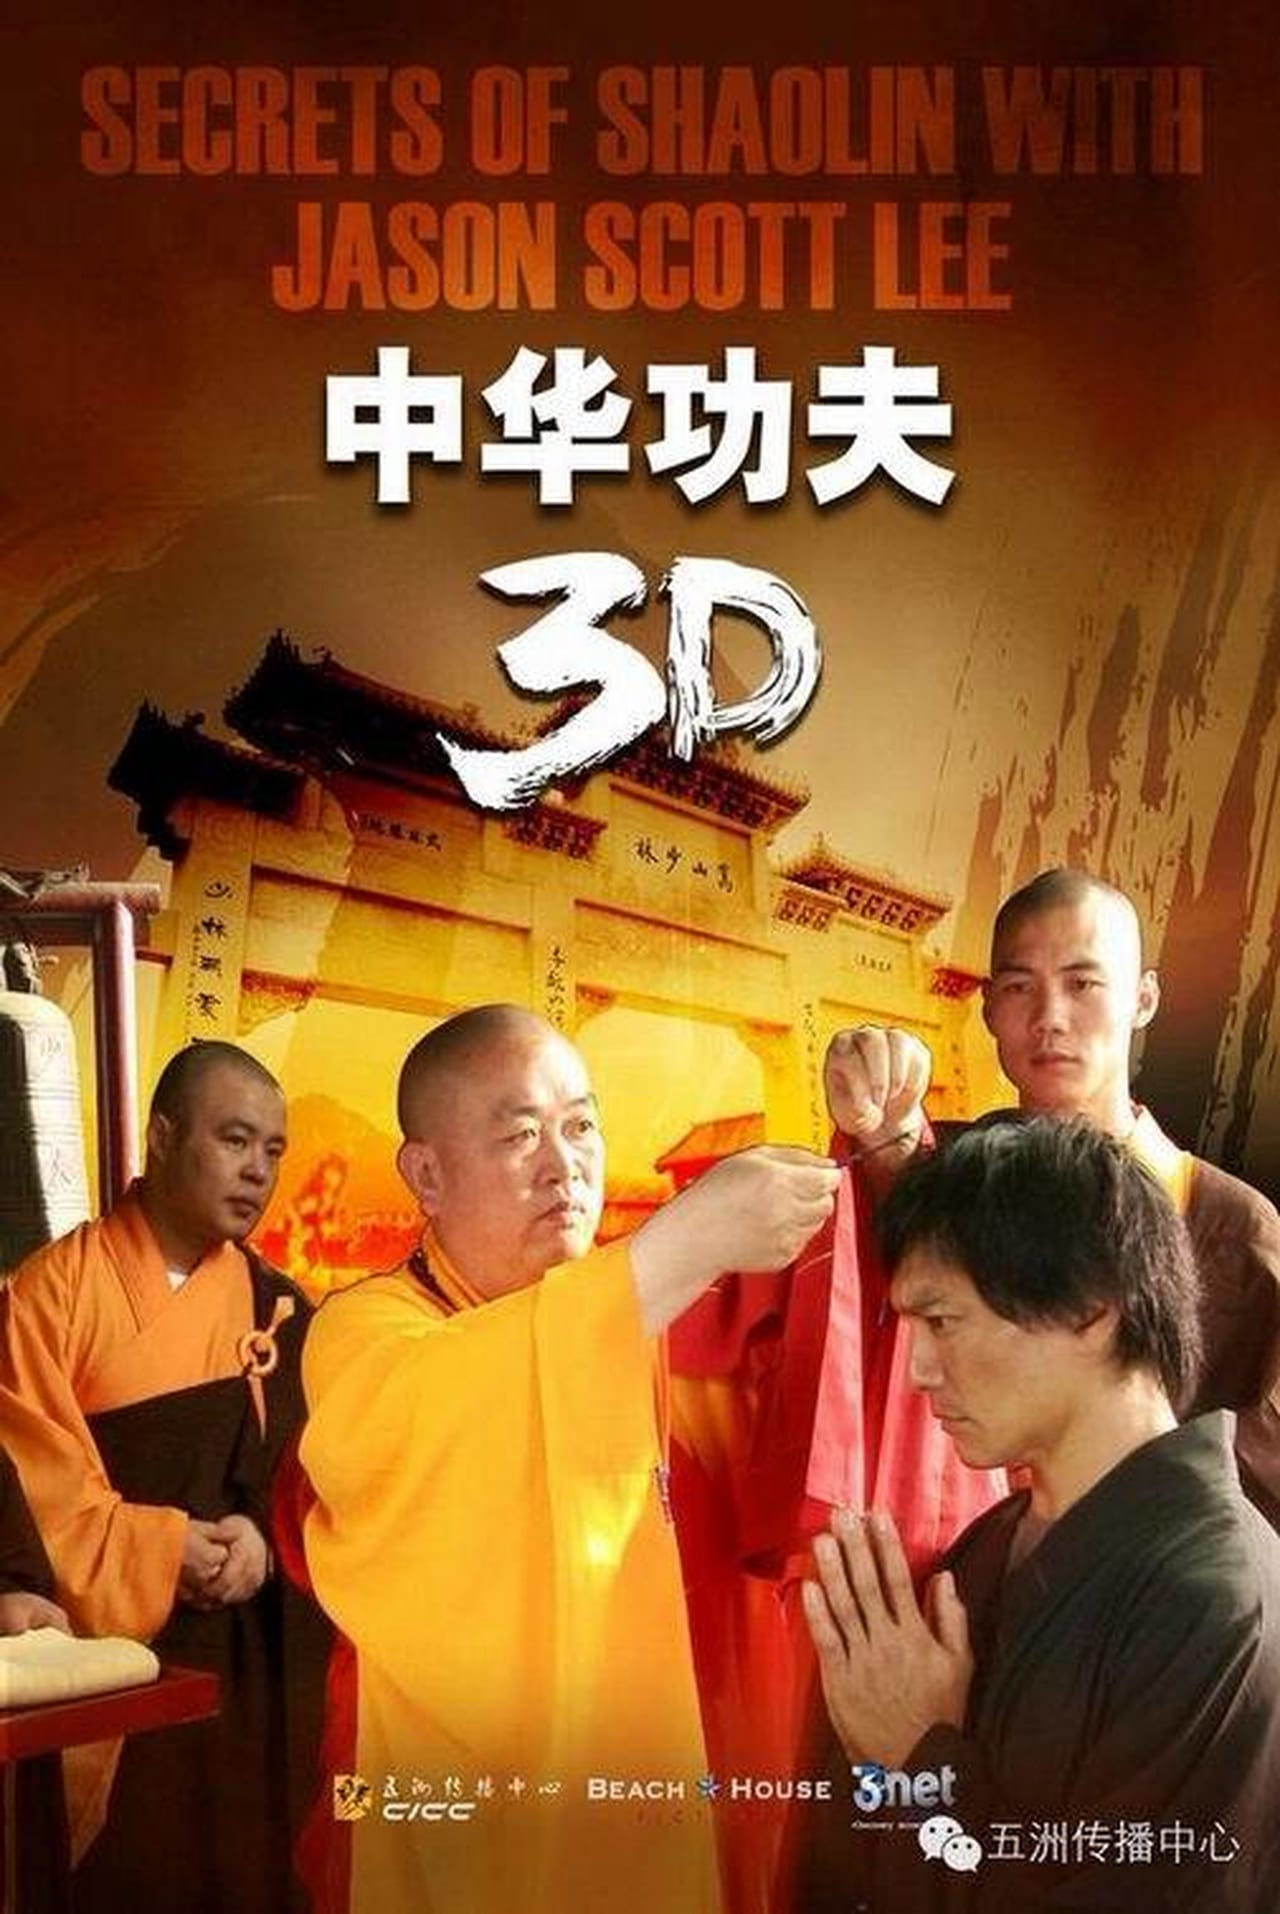 Secrets of Shaolin with Jason Scott Lee (2012)